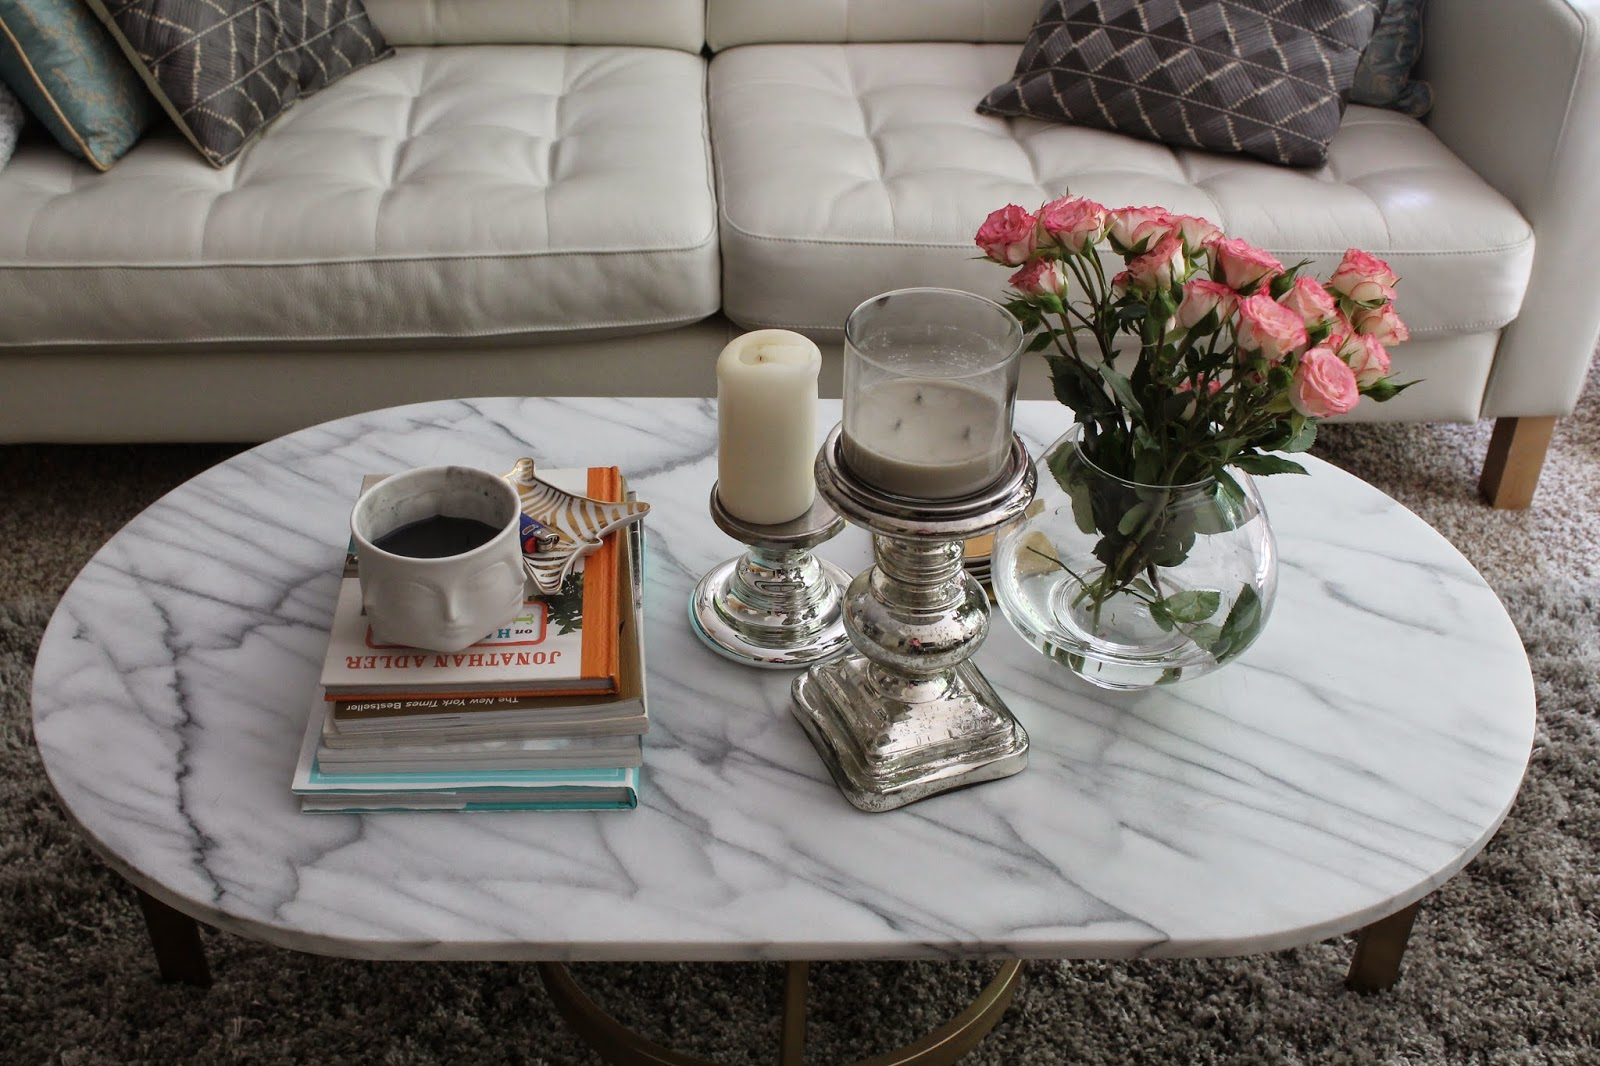 How to style your coffee table: Coffee table two ways, part 1